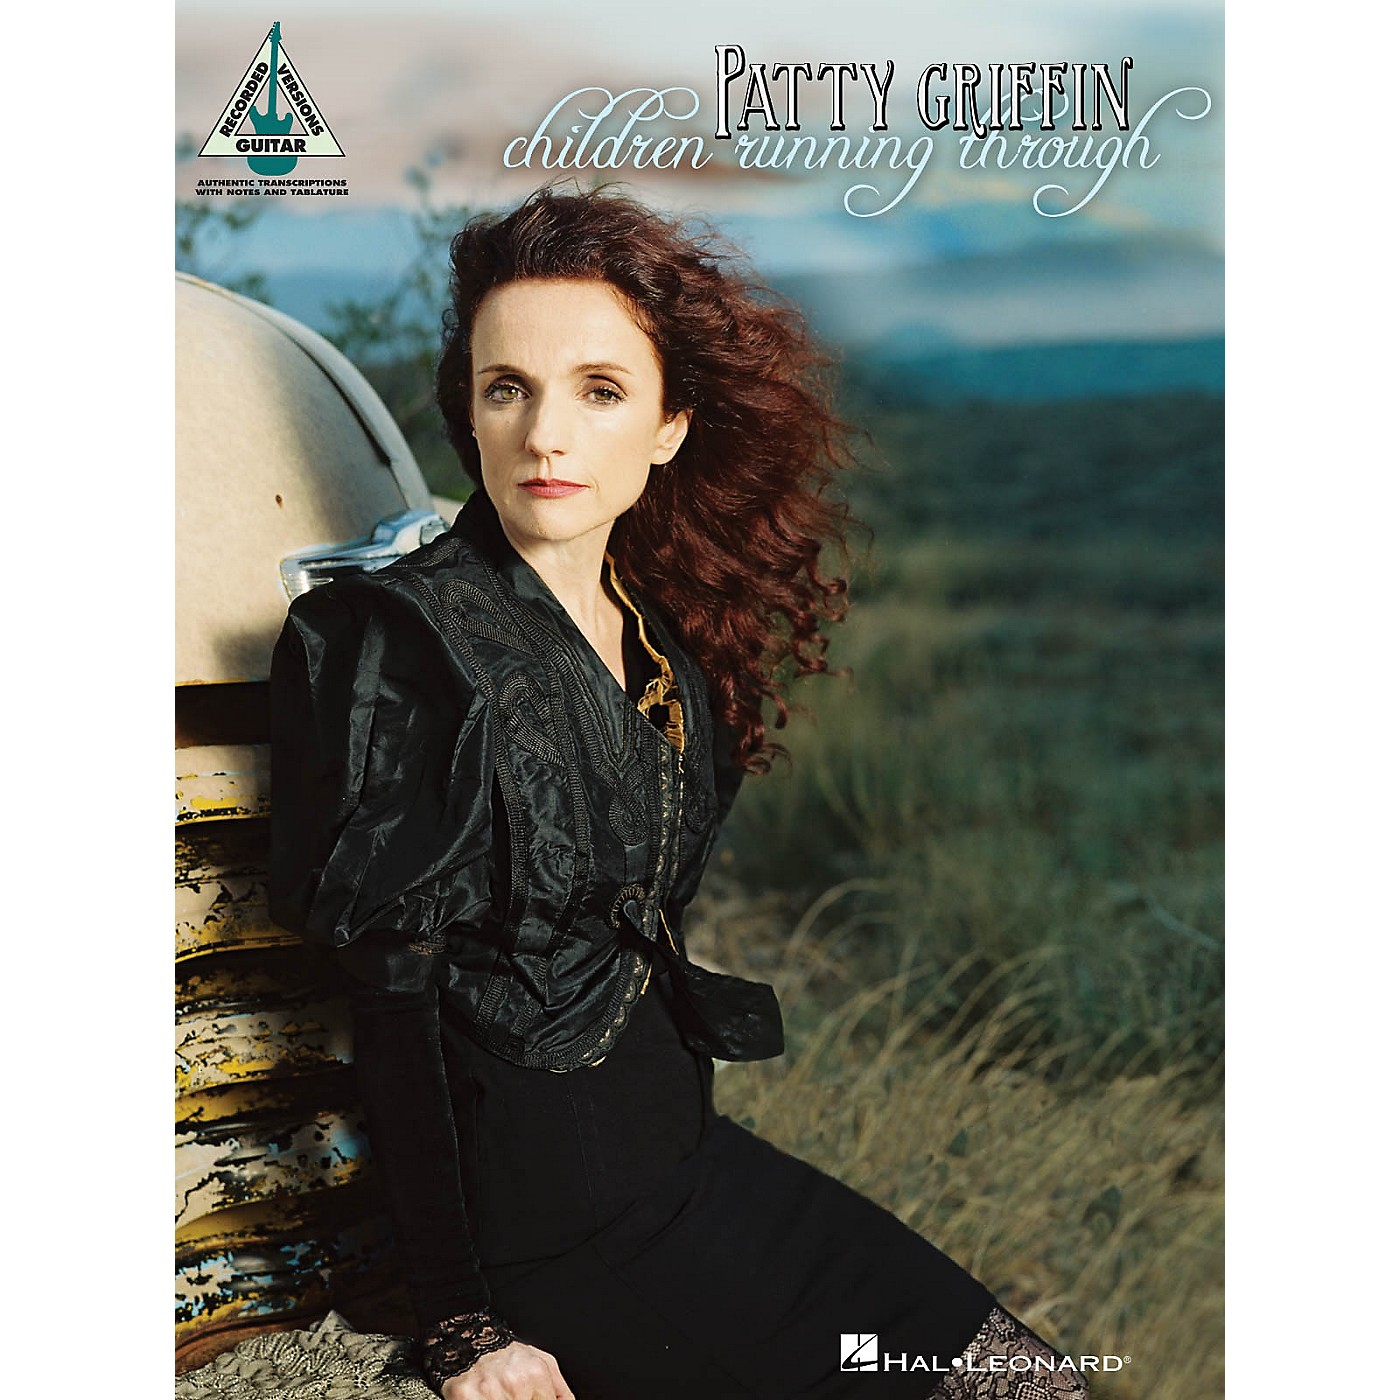 Hal Leonard Patty Griffin - Children Running Through Guitar Recorded Version Series Softcover by Patty Griffin thumbnail